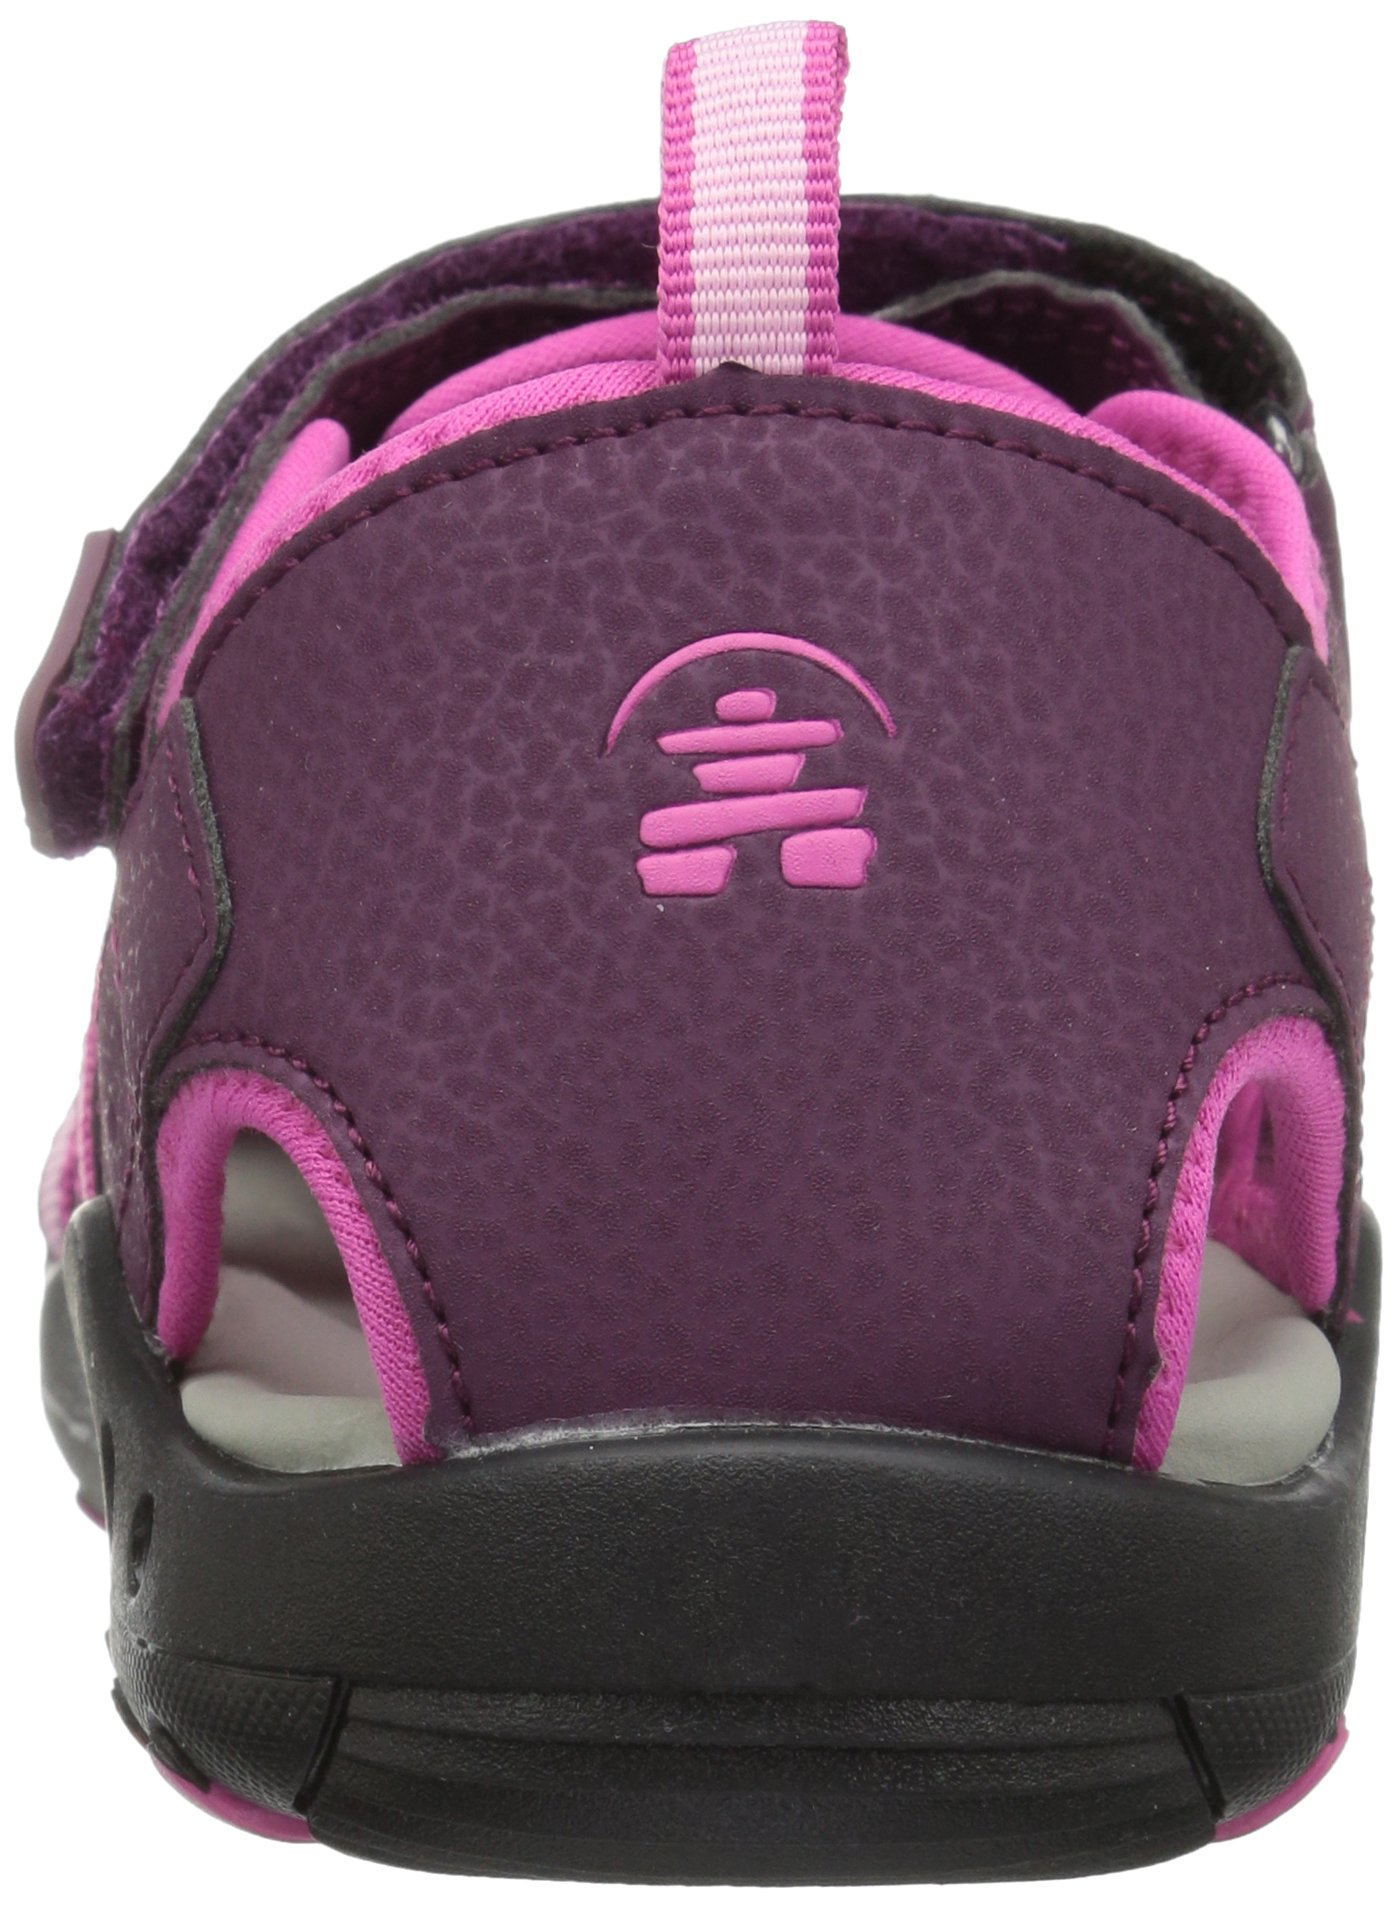 Kamik Toddler Crab Sandals Plum 4 by Kamik (Image #2)